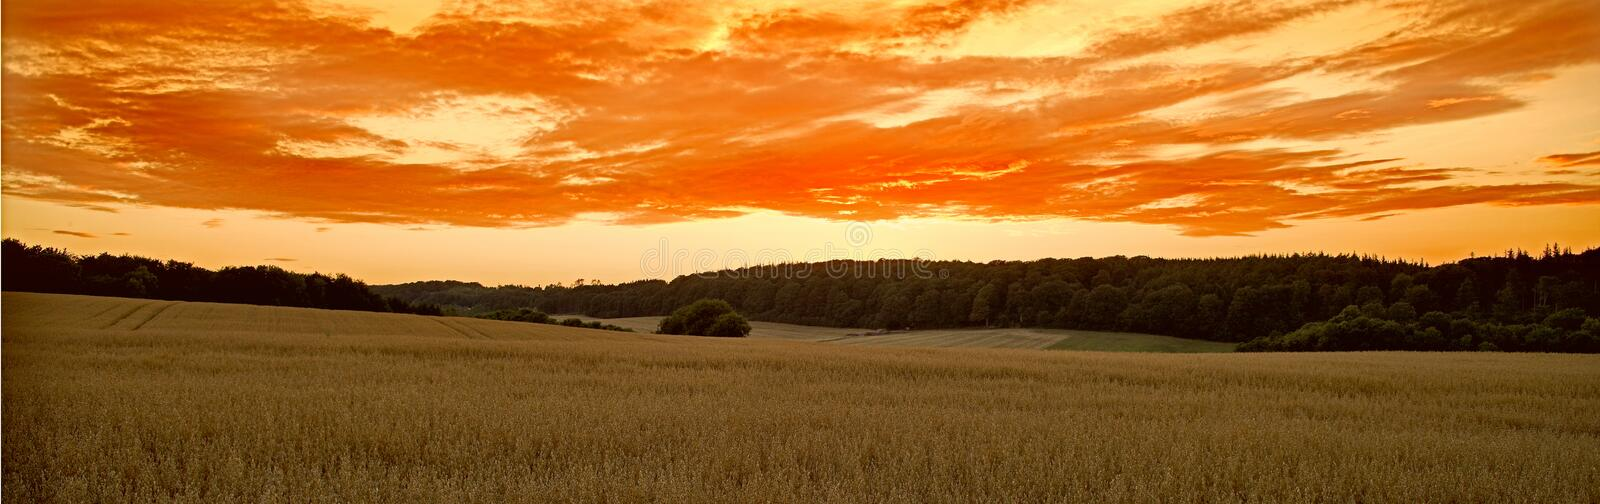 Corn field at sunset stock images